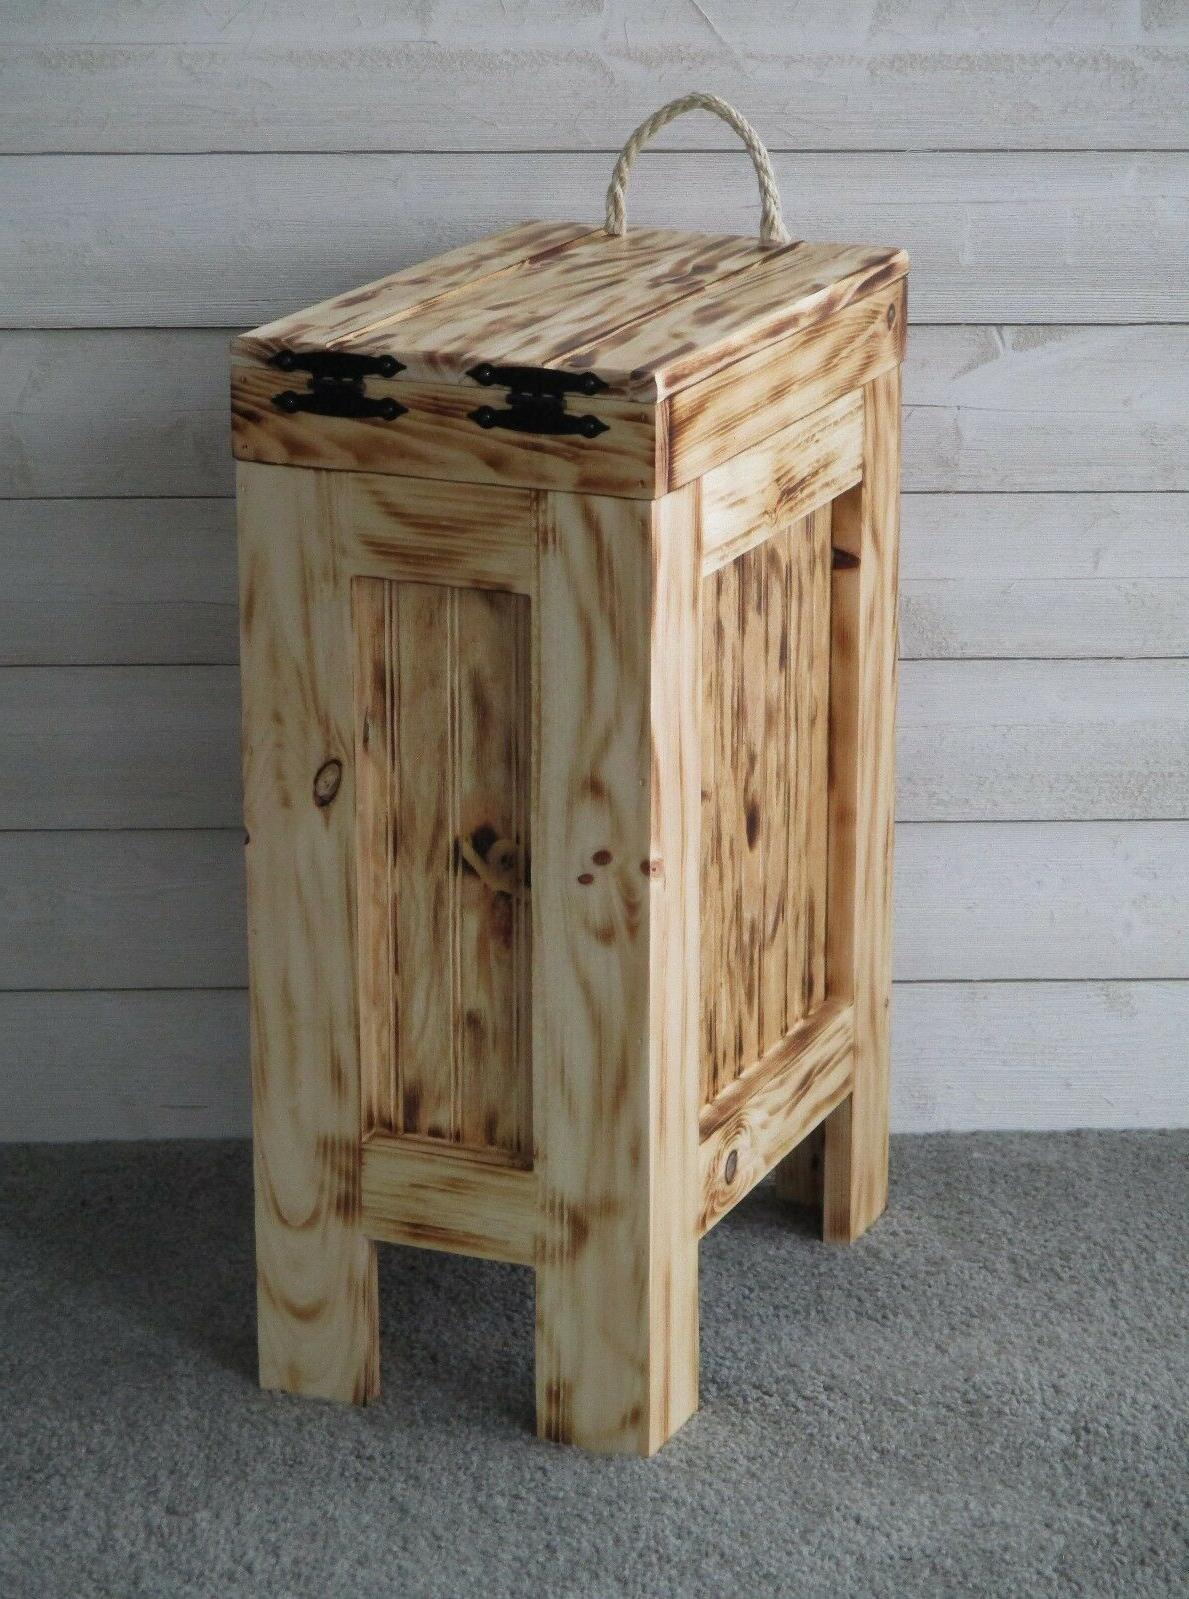 Wood Trash Can Kitchen Garbage Can Trash Burnt ROPE Handle